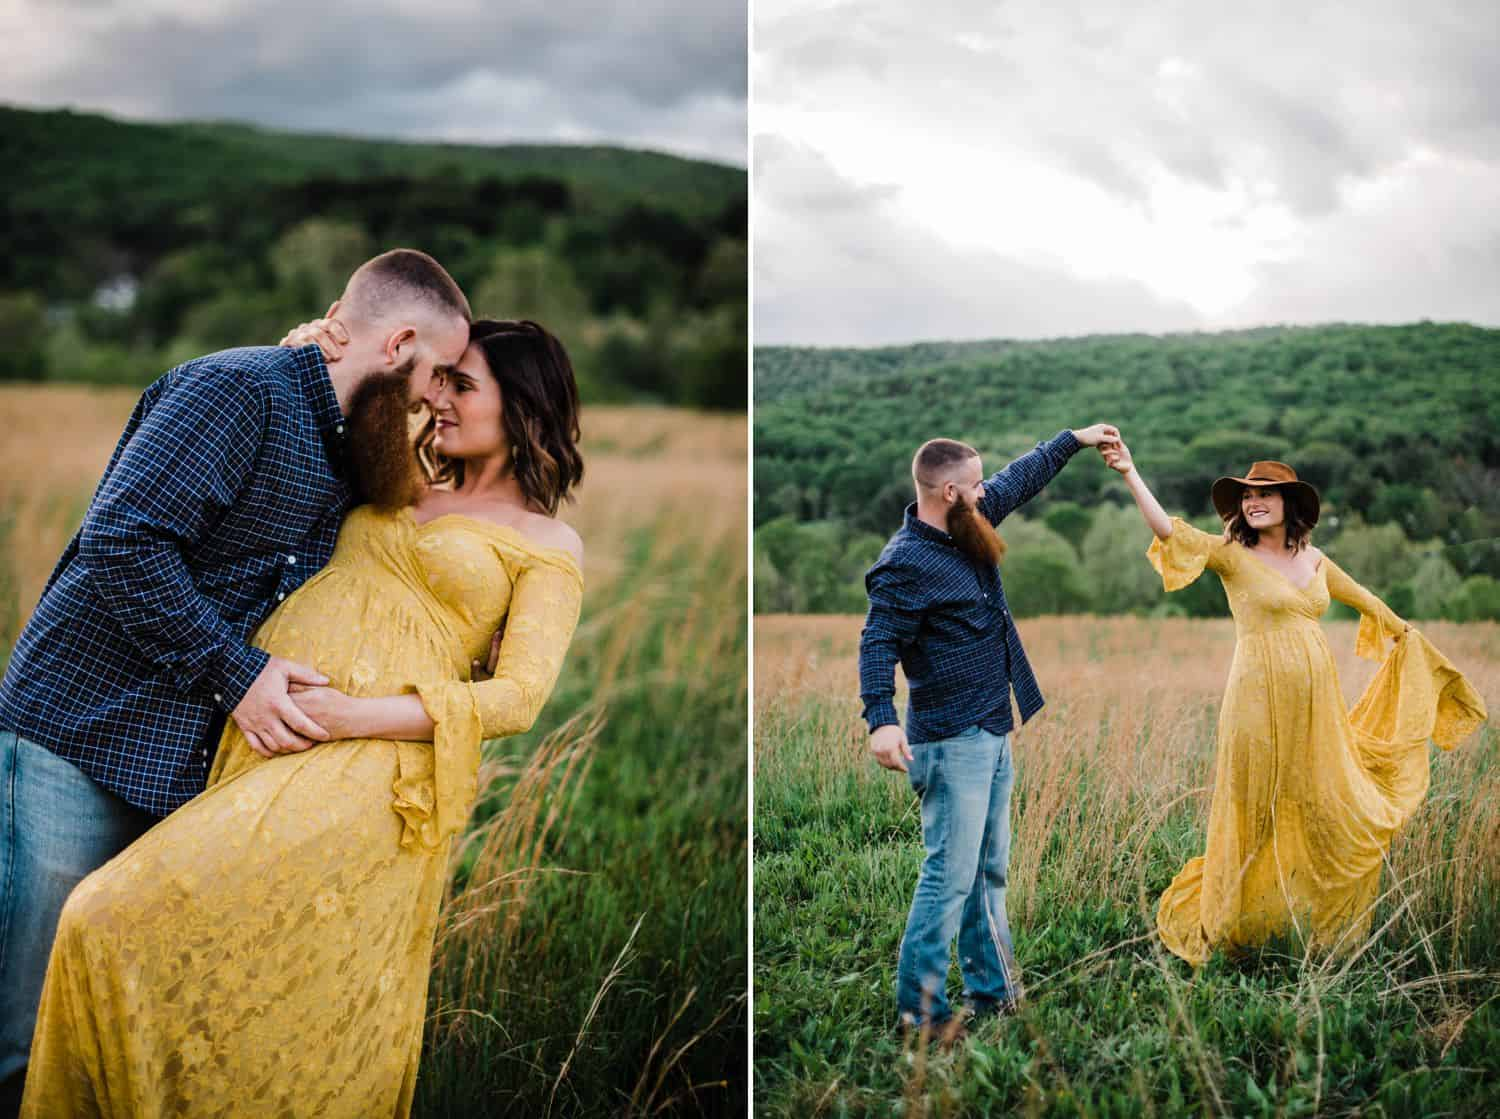 Kaytlin Lane's maternity poses include these dancing moves